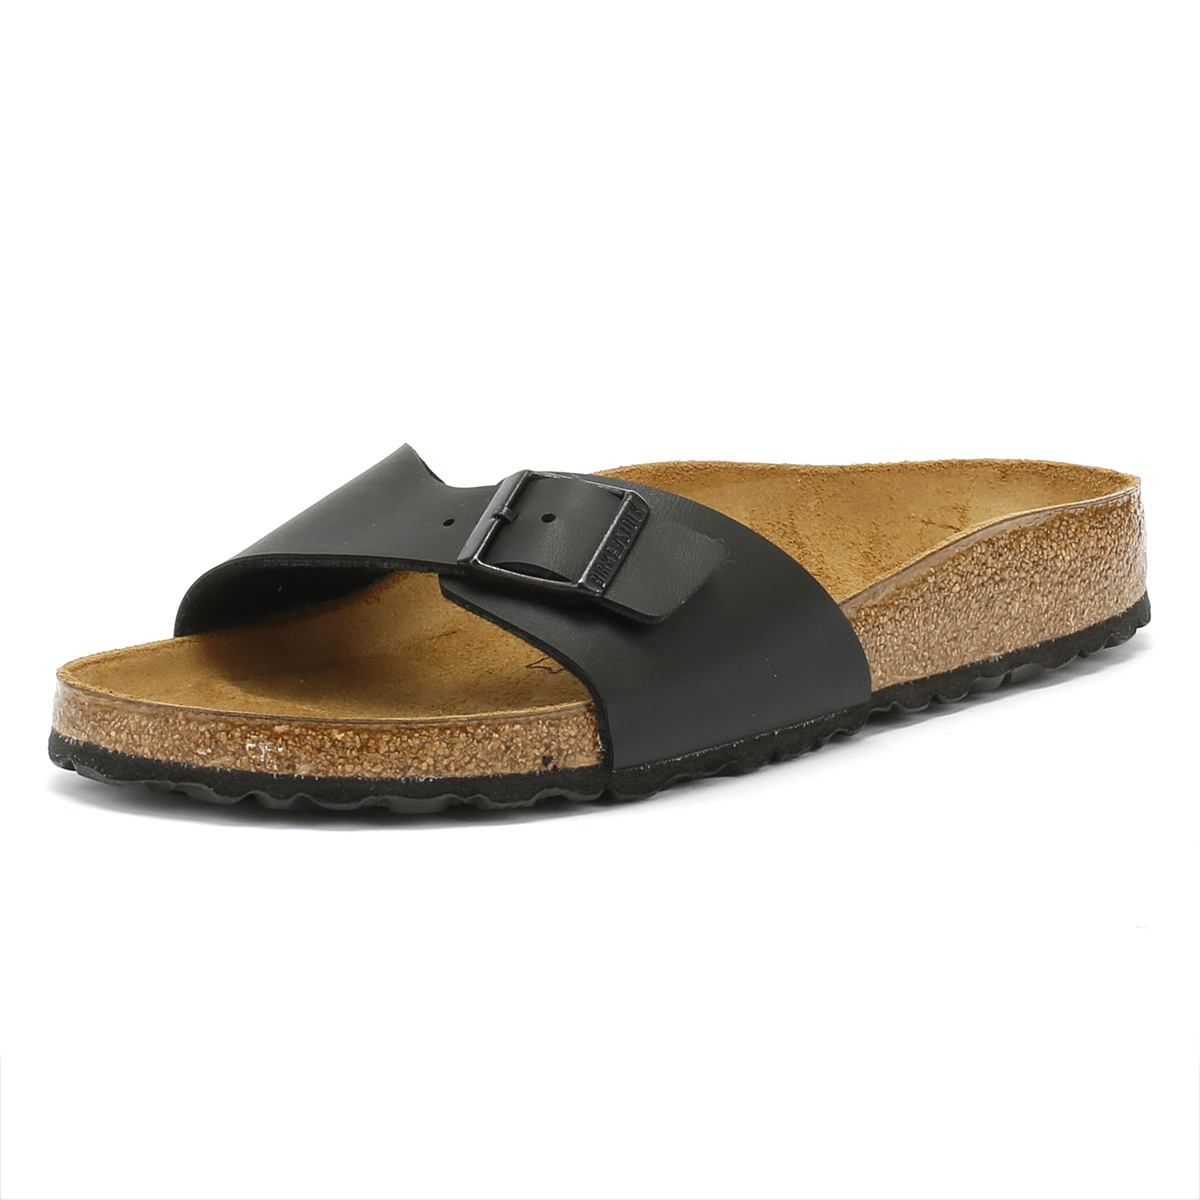 18cdf68098f5 Details about Birkenstock Womens Black Madrid Birko Flor Sandals Summer  Casual Slides